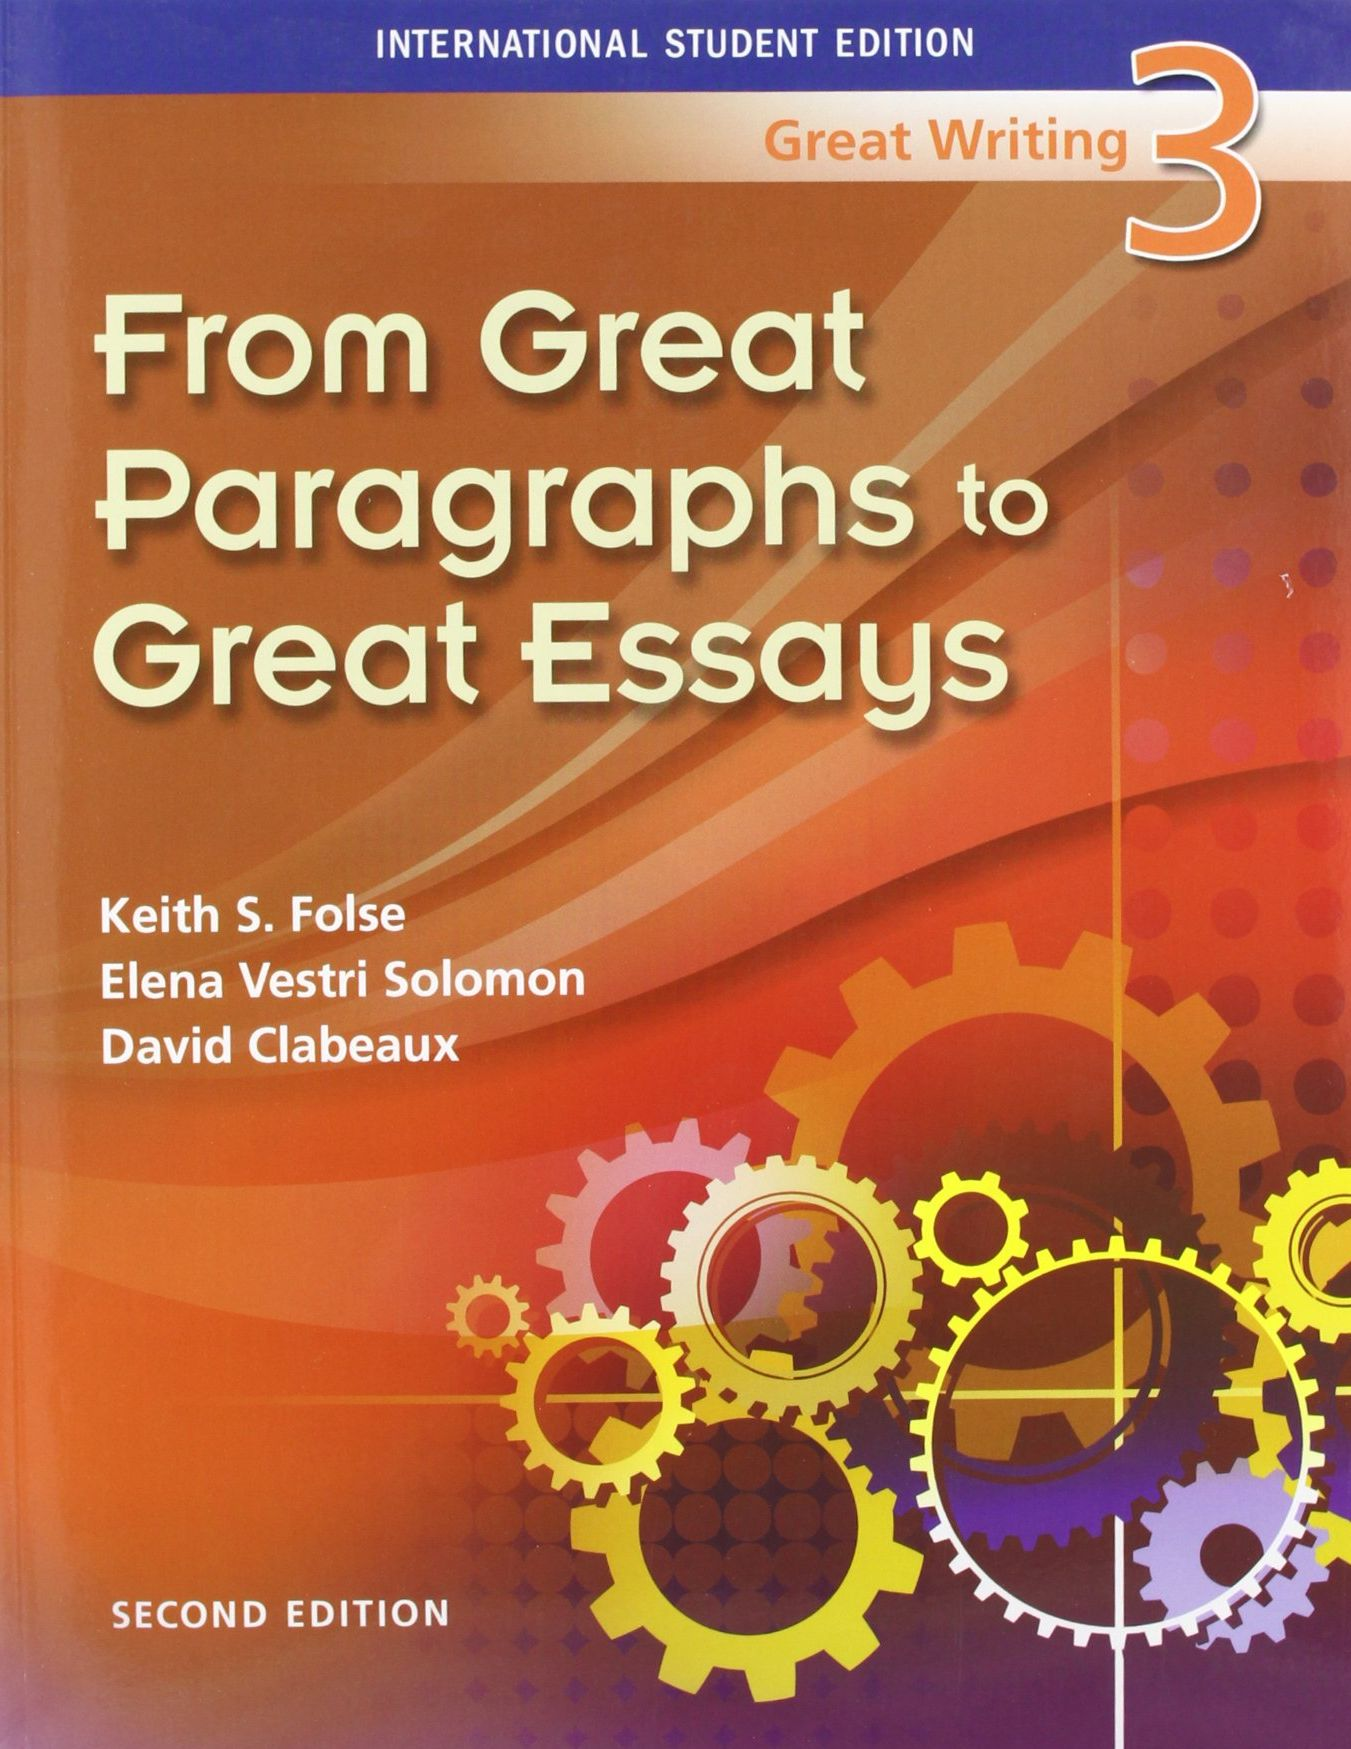 great writing 5 greater essays keith folse Prices for great grammar great by folse buy keith s folse new, used, rental great writing 5 : greater essays edition: 3rd.